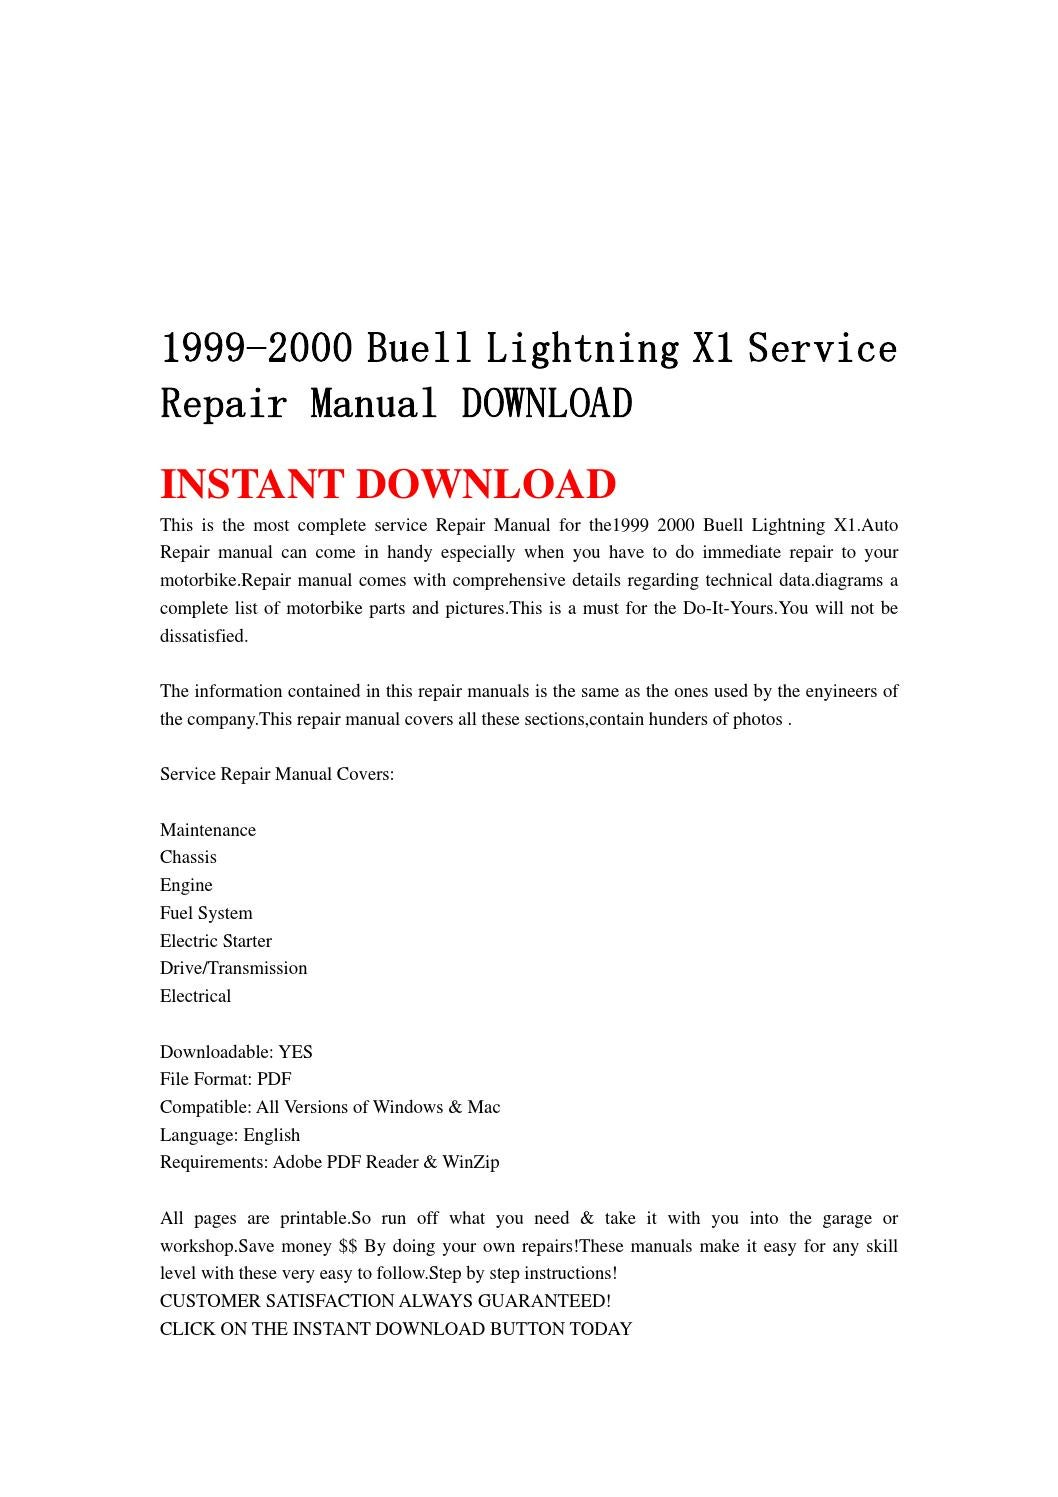 1999 2000 buell lightning x1 service repair manual download by jfnhsbef6t -  issuu